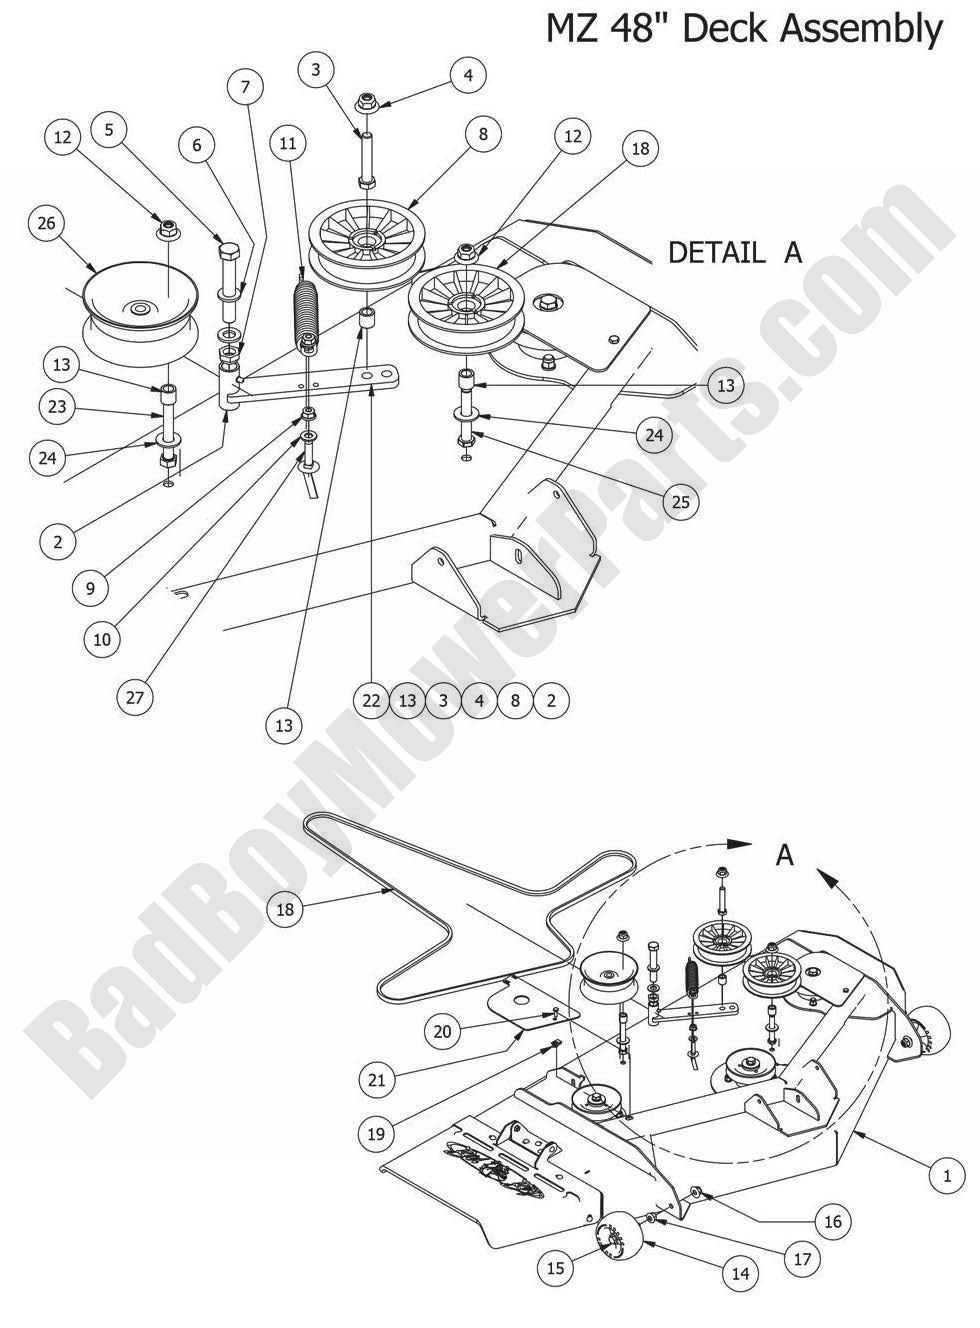 2010 Bad Boy Mz Kawasaki 22 Hp Wiring Diagram : 45 Wiring